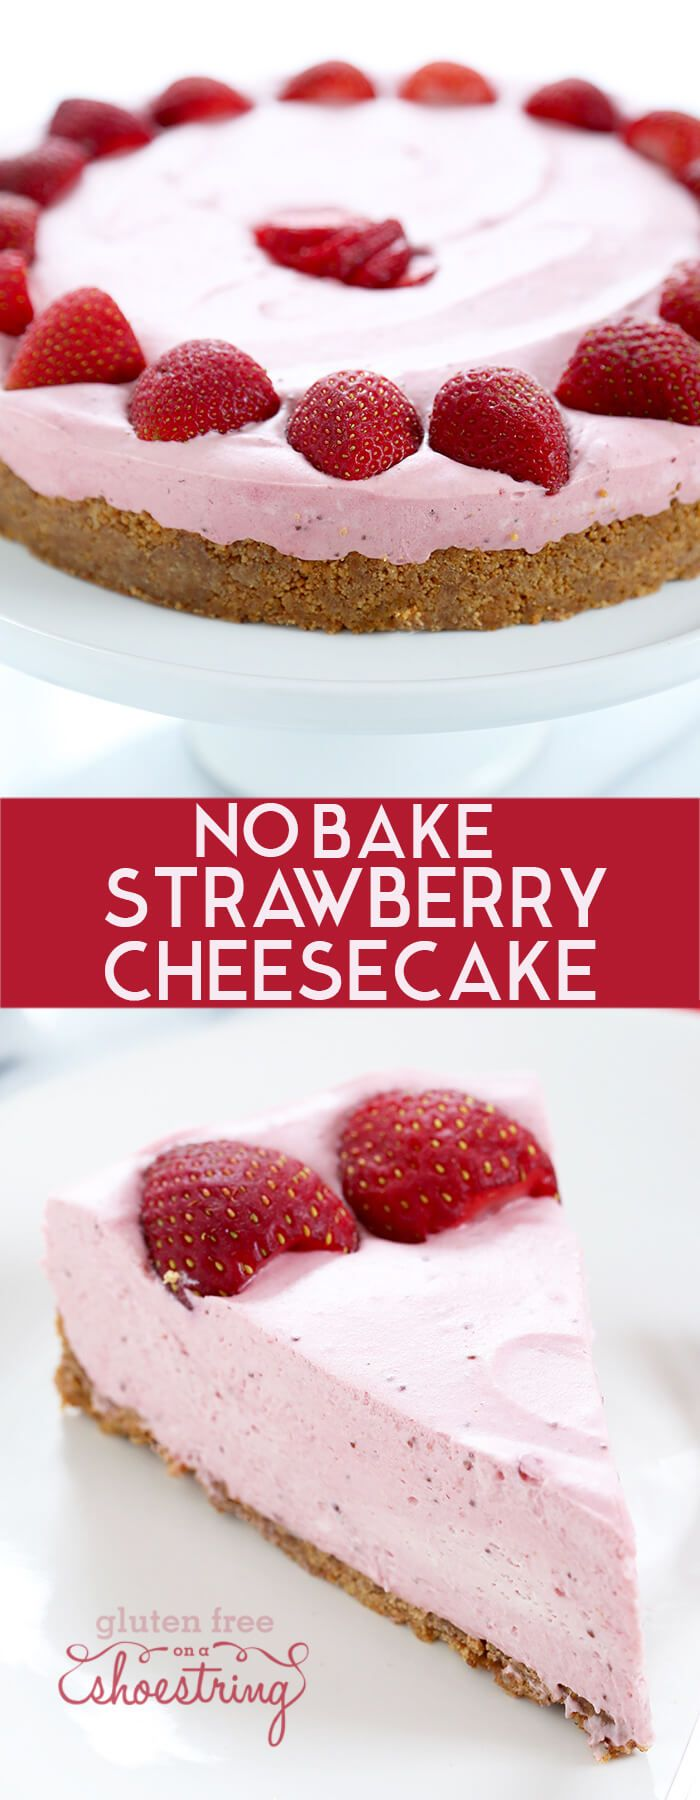 Perfect smooth and creamy no bake strawberry cheesecake, made with strawberries, cream cheese and whipped cream, plus a bit of gelatin and sugar.